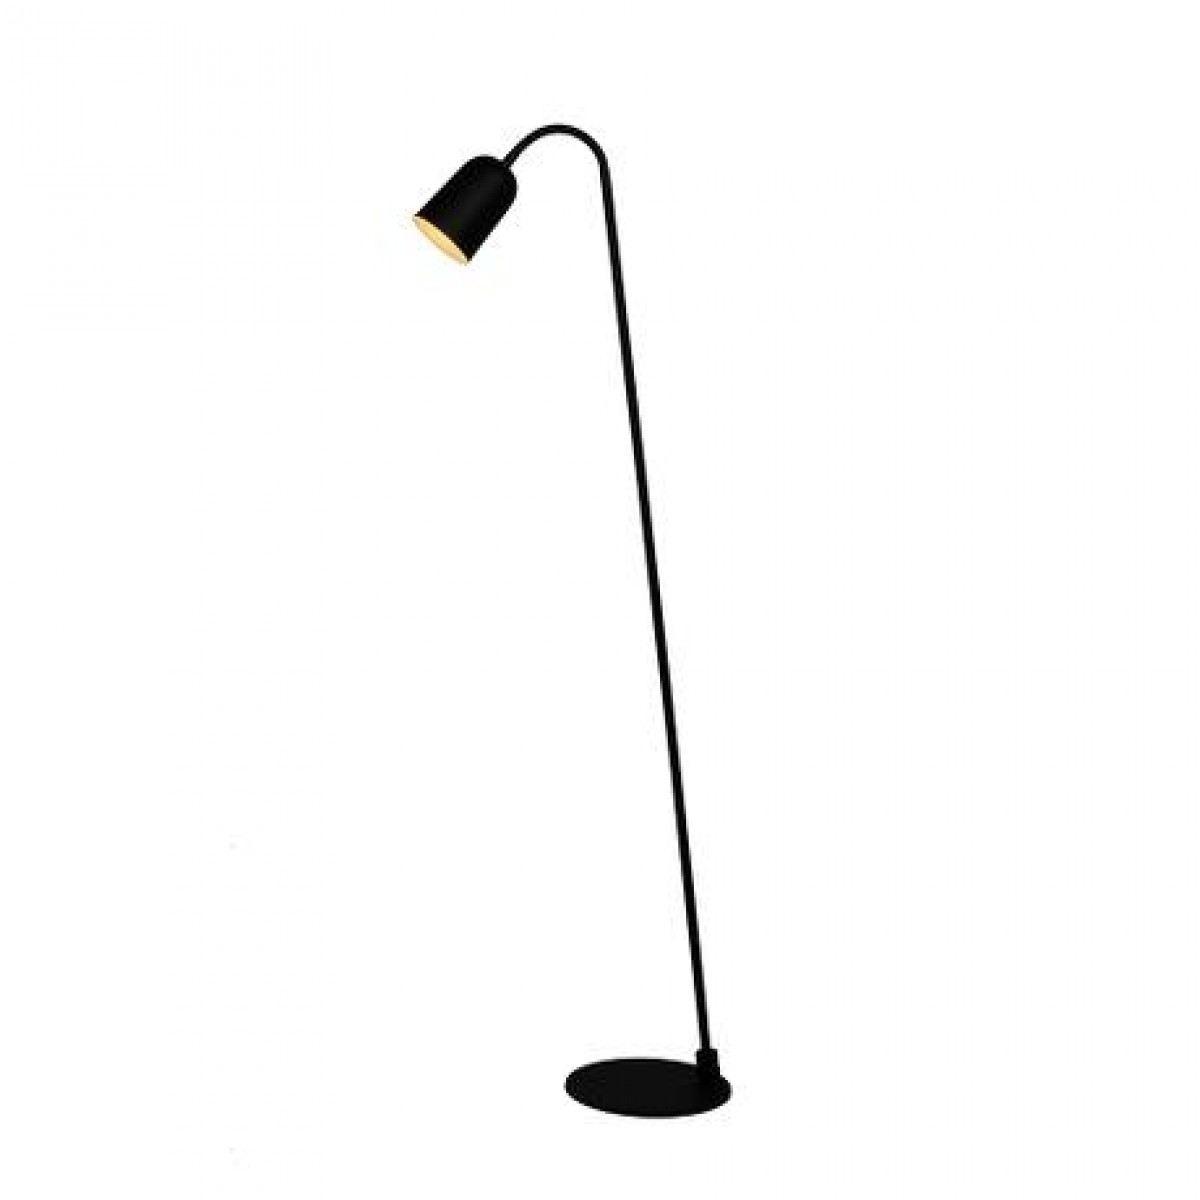 HALO DESIGN Gulvlampe elegance sort